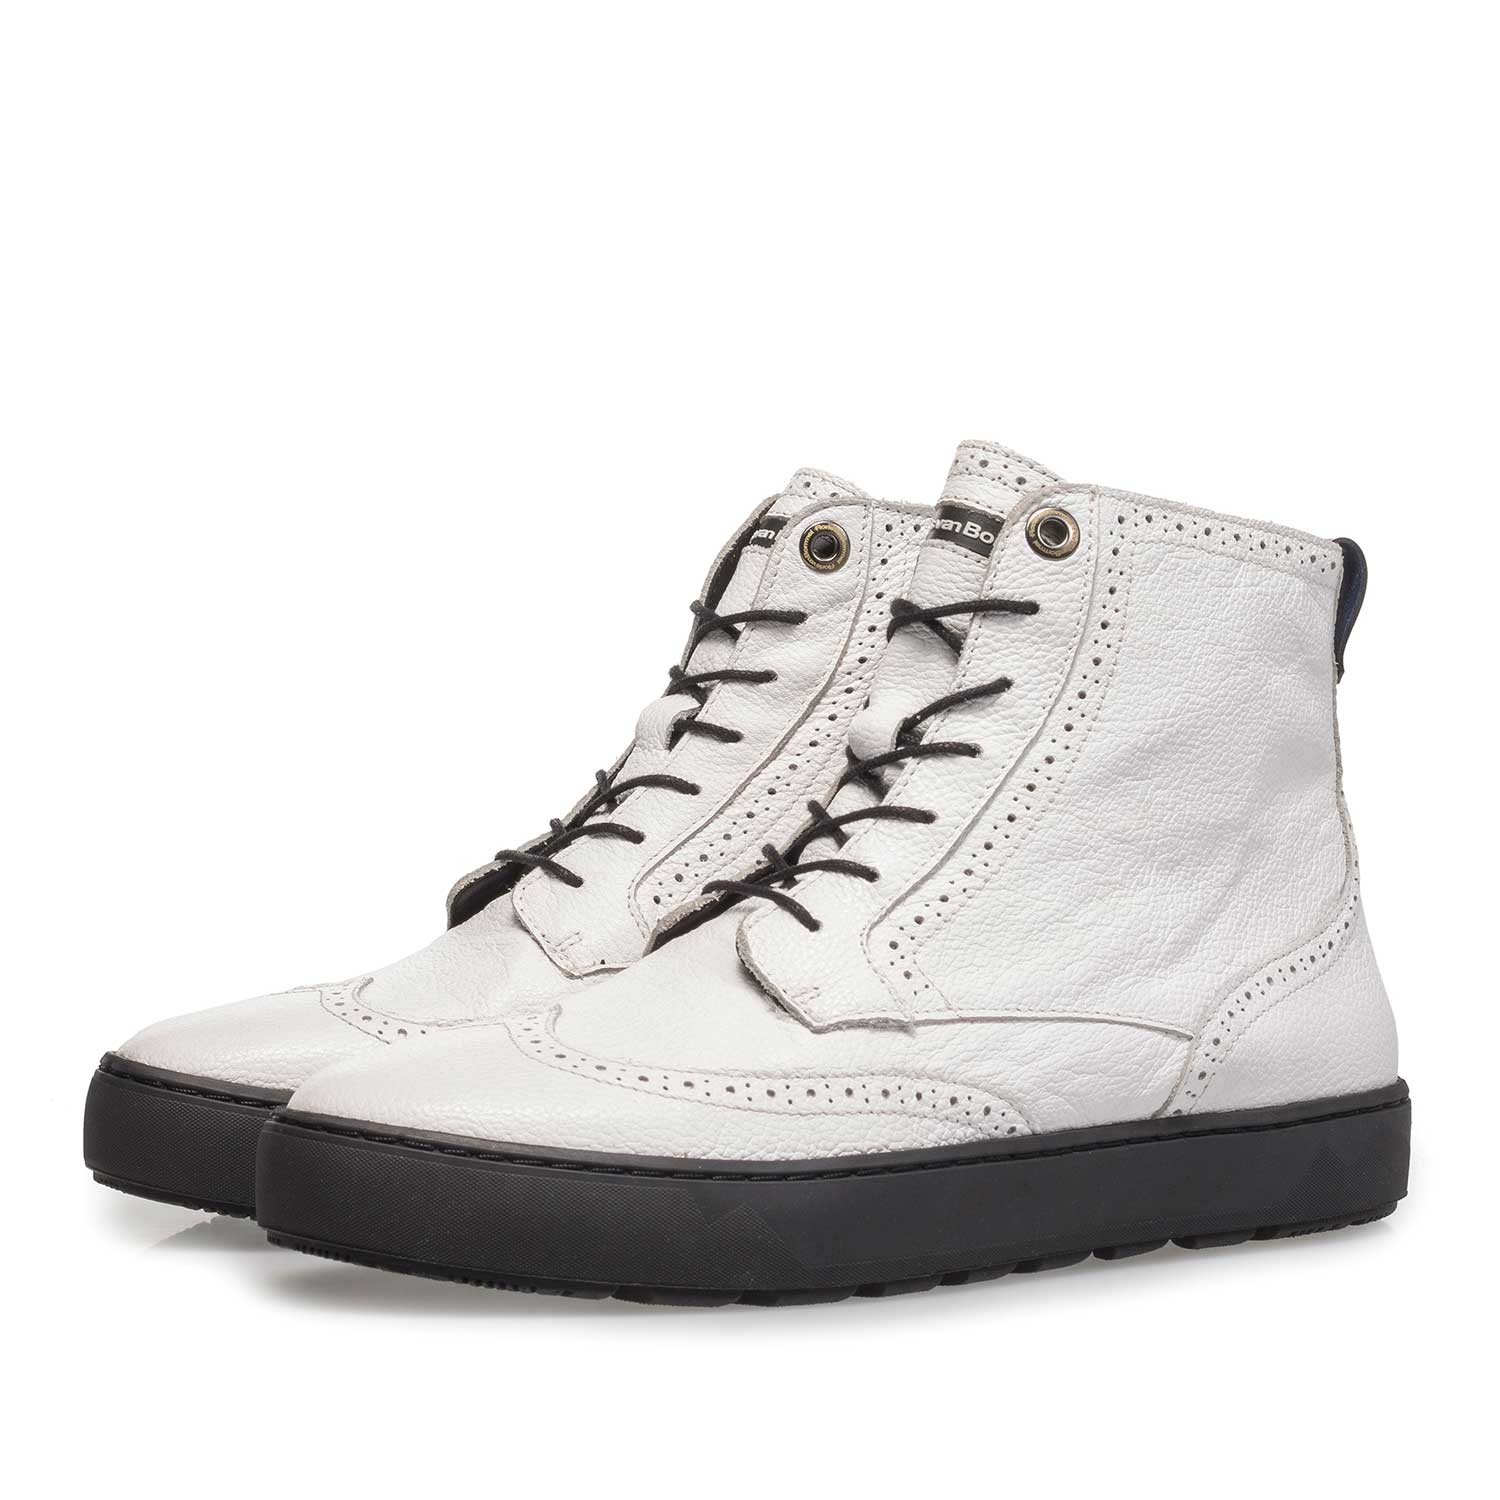 85286/02 - White mid-high sneaker with structured leather